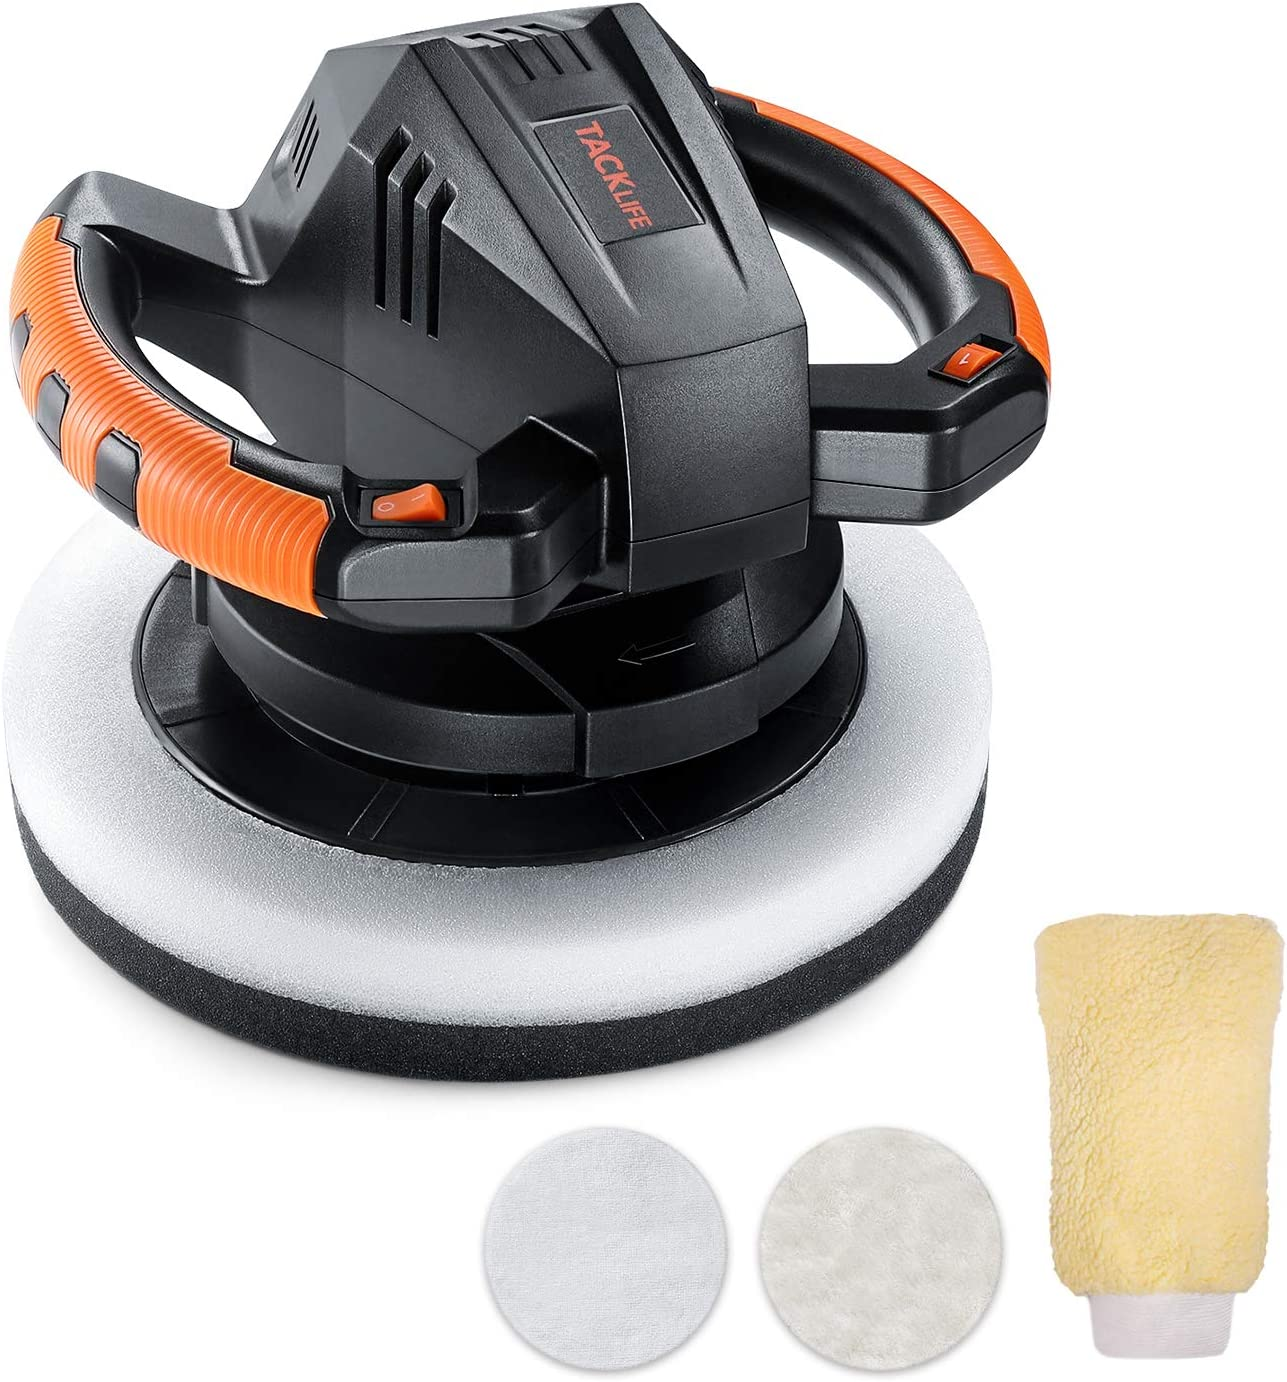 Waxer/Polisher, TACKLIFE 10-Inch Dual Action Random Orbital Car Buffer Polisher Waxer, 10Ft Power Cord, Variable Speed, With Polisher Pad Bonnets and Gloves, Ideal for Car Waxing - TCP01A